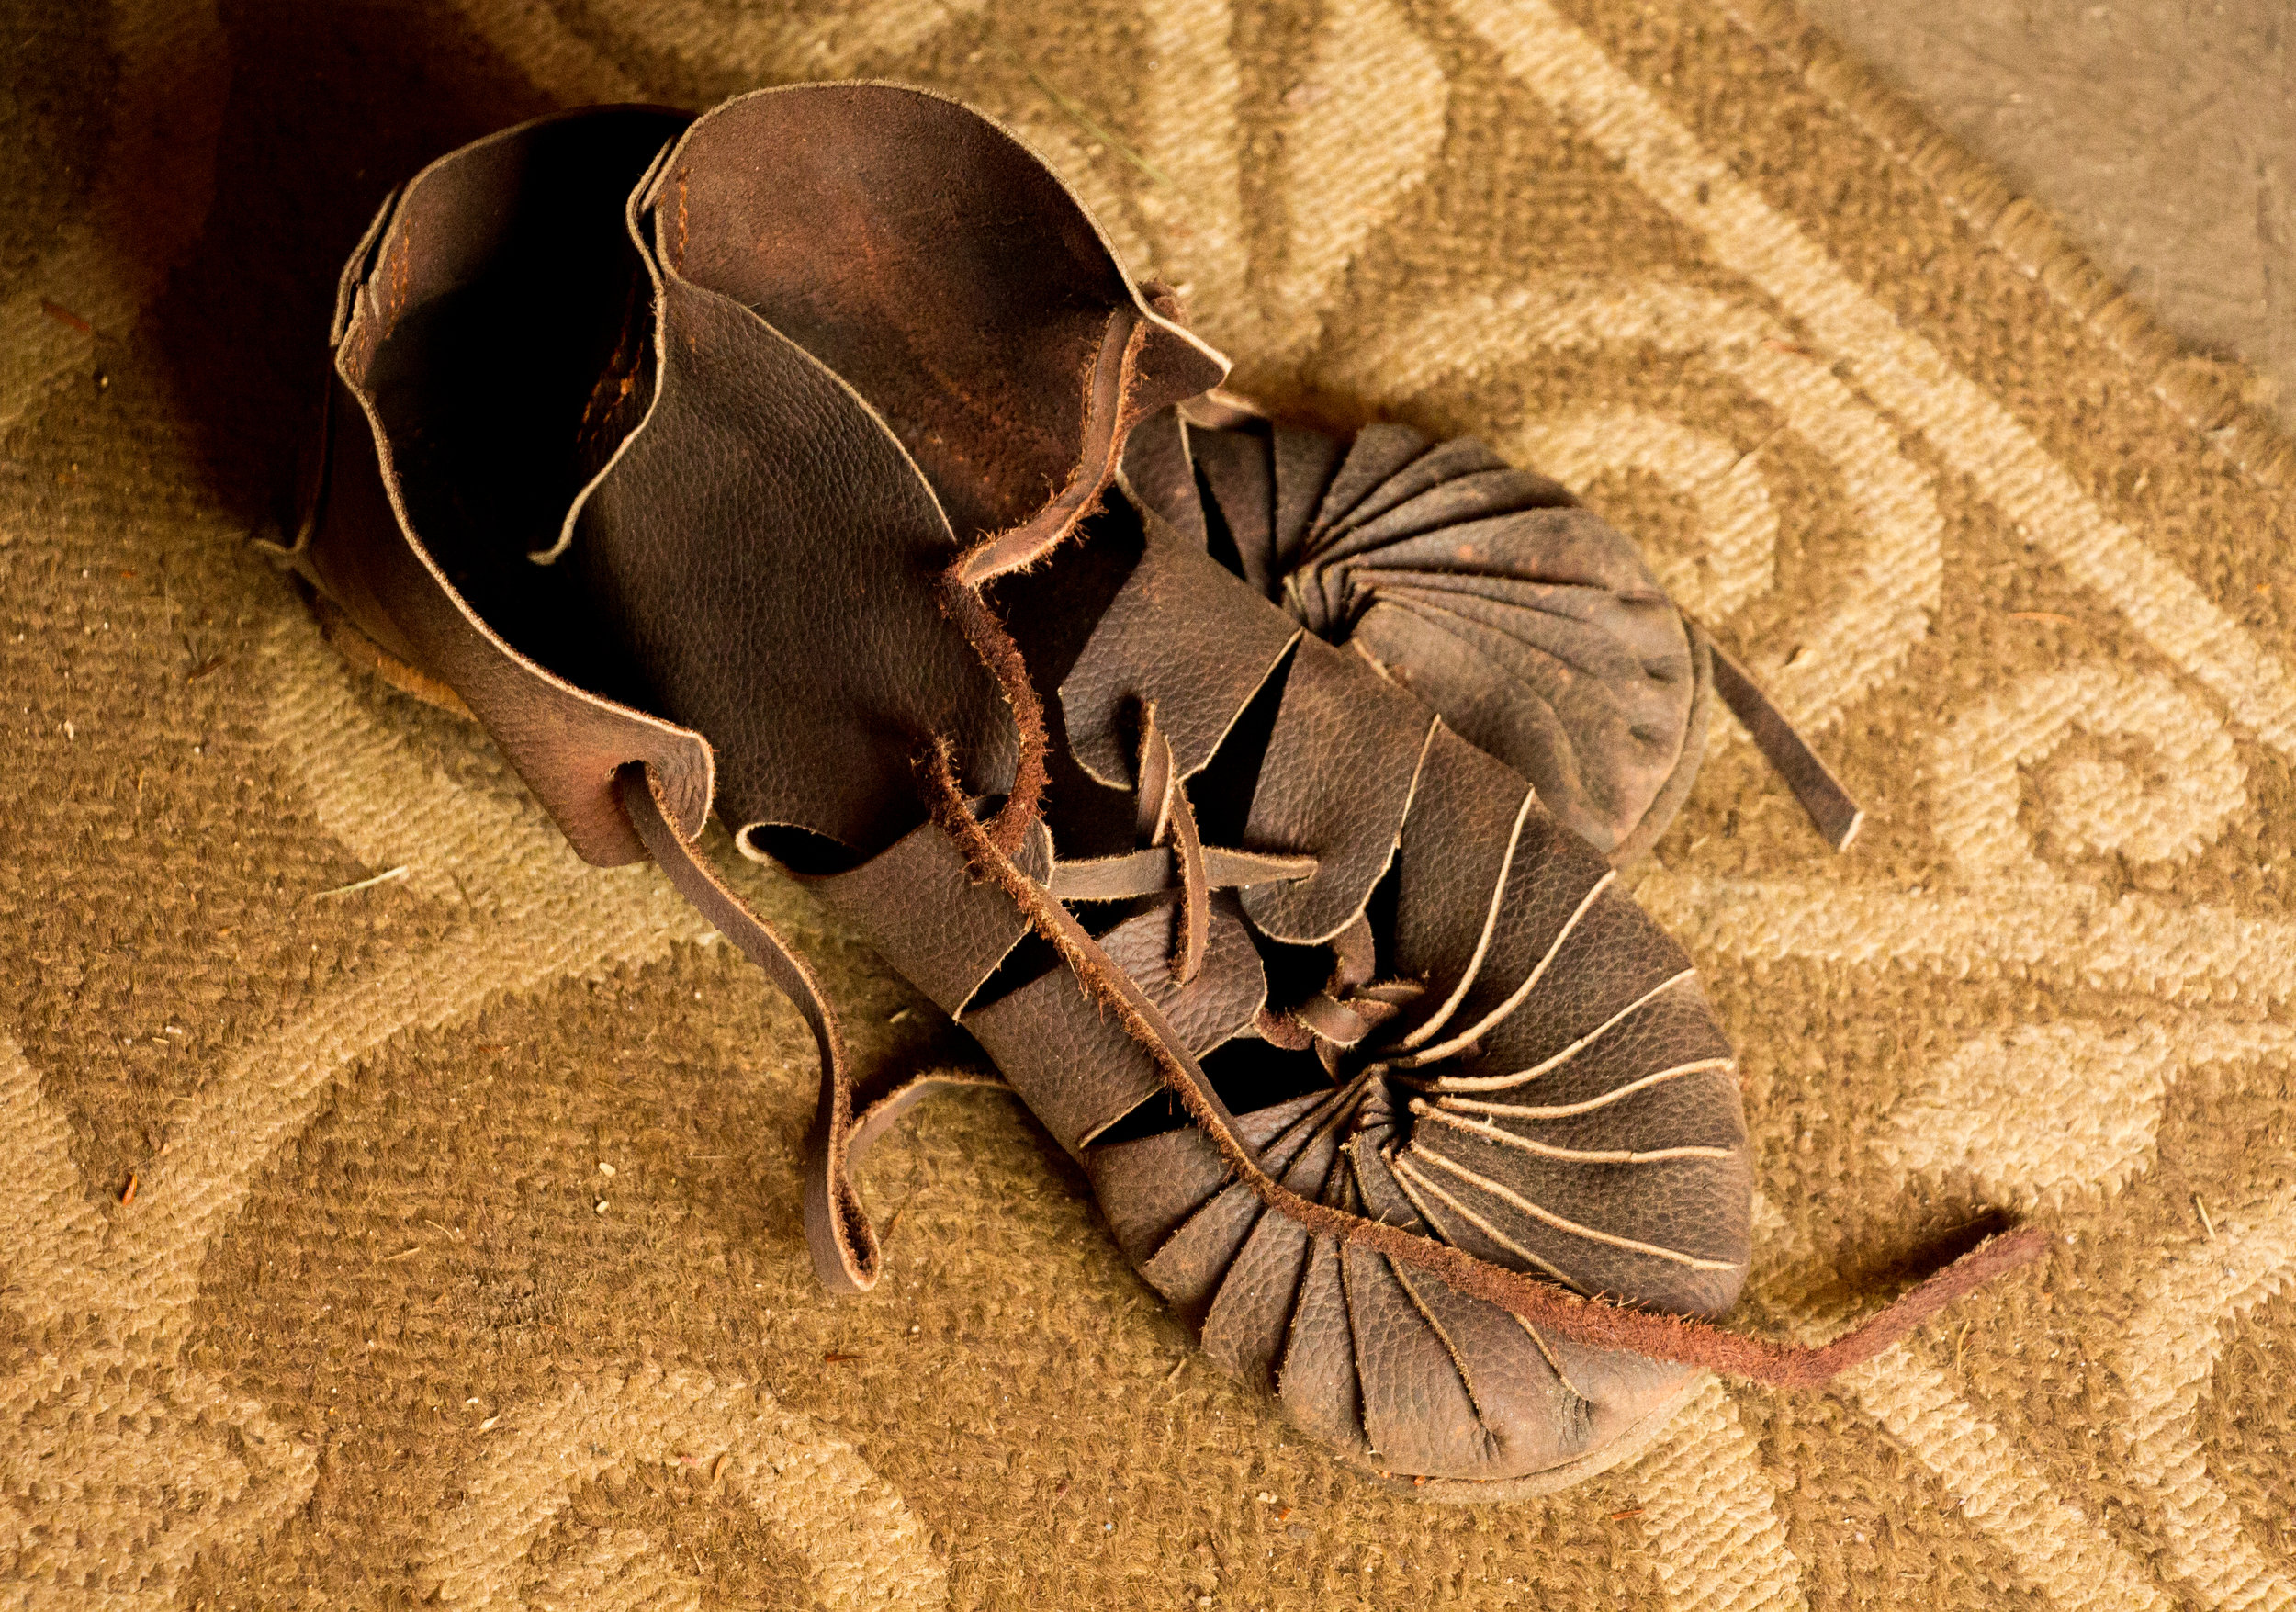 Shoes belonging to Adikan Rafenson.